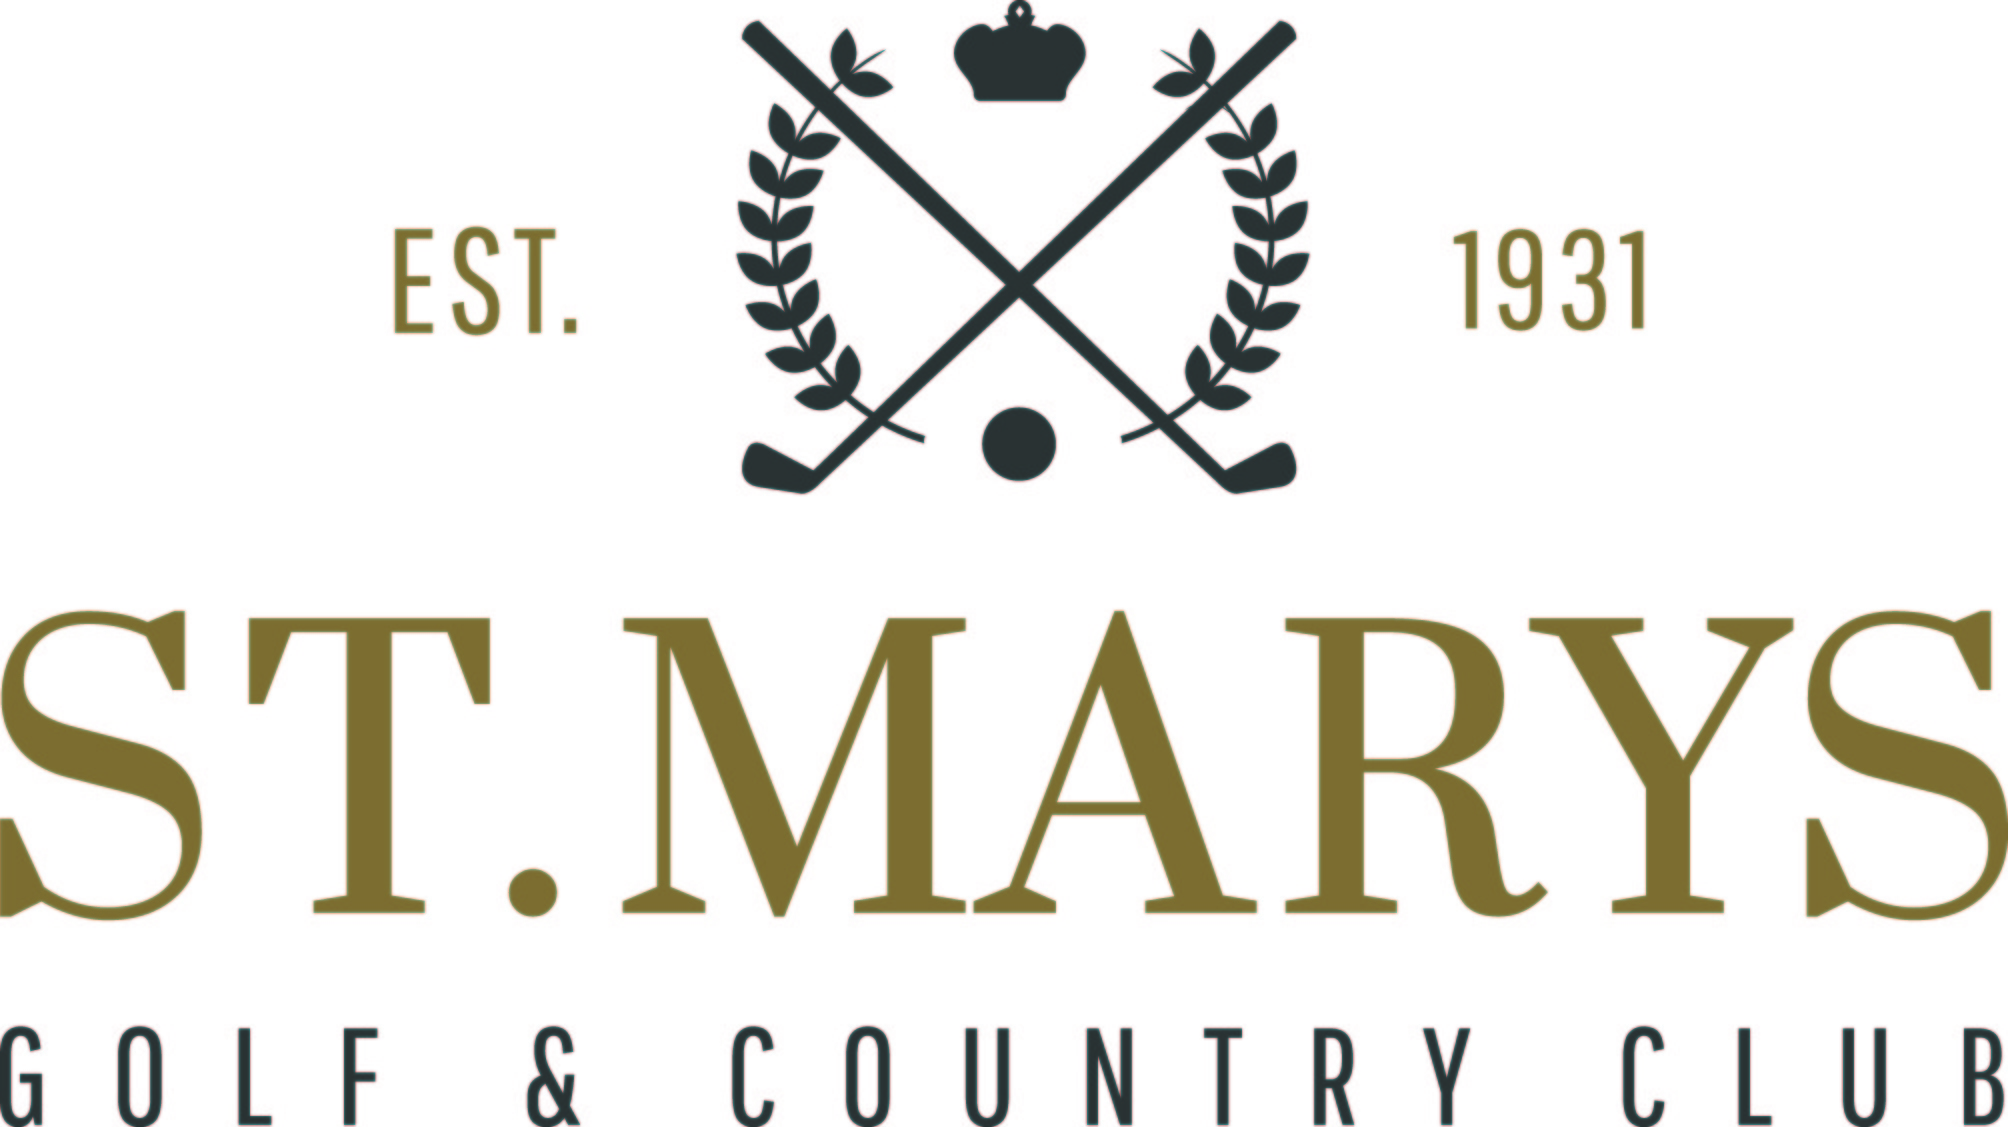 St. Mary's Golf & Country Club